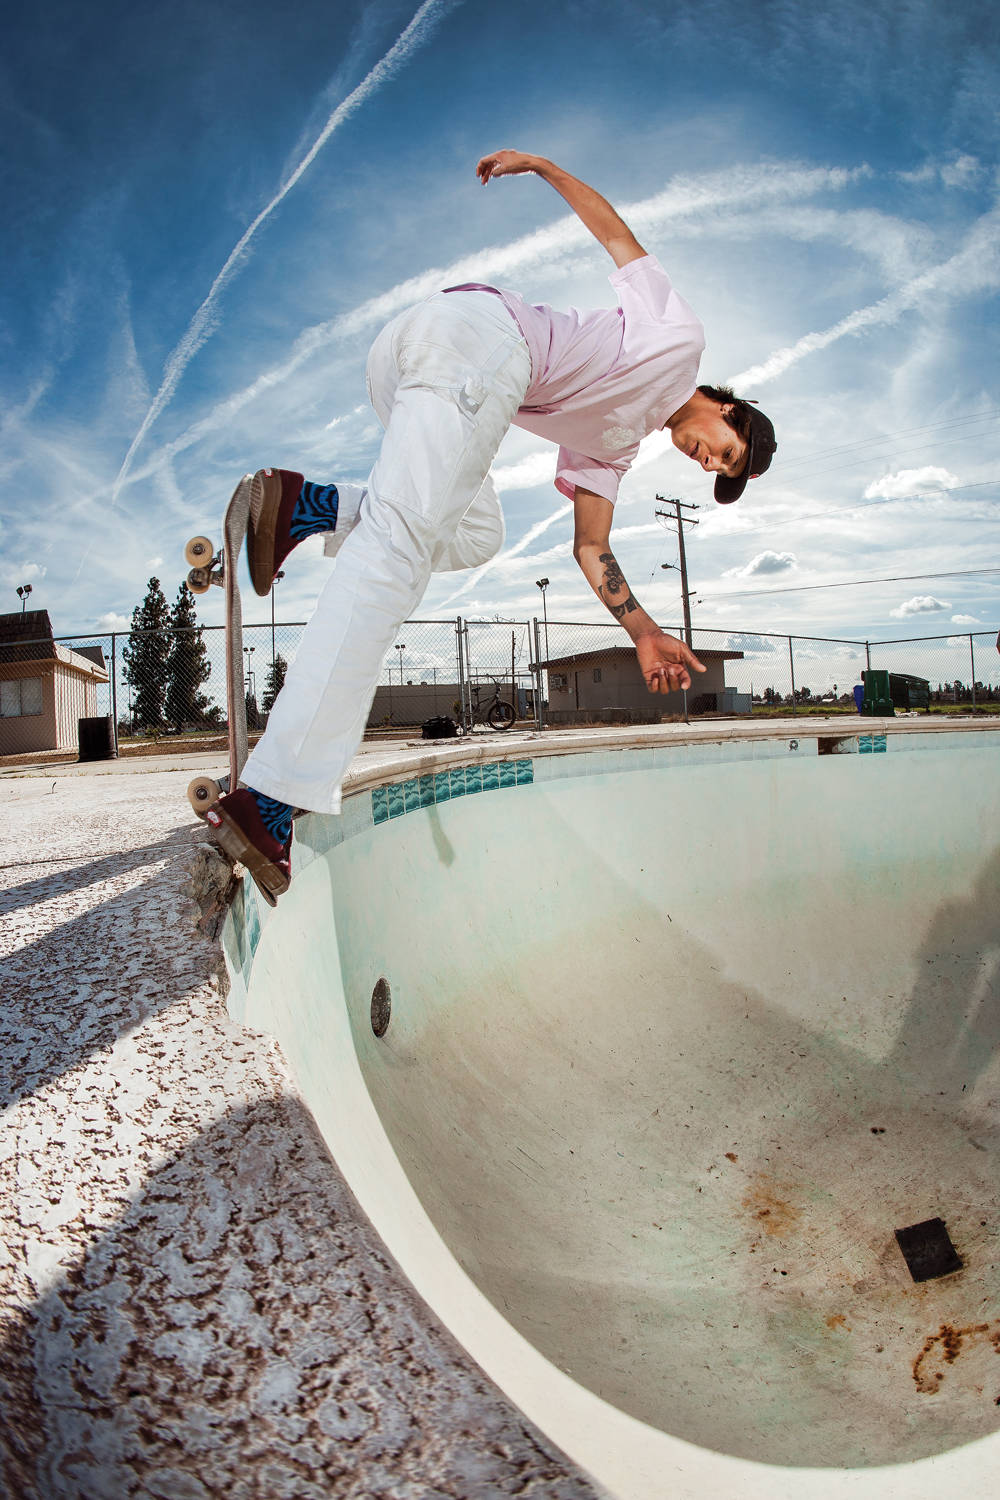 THE NEXT NEW WAVE -- Willy Lara - Berrics Magazine